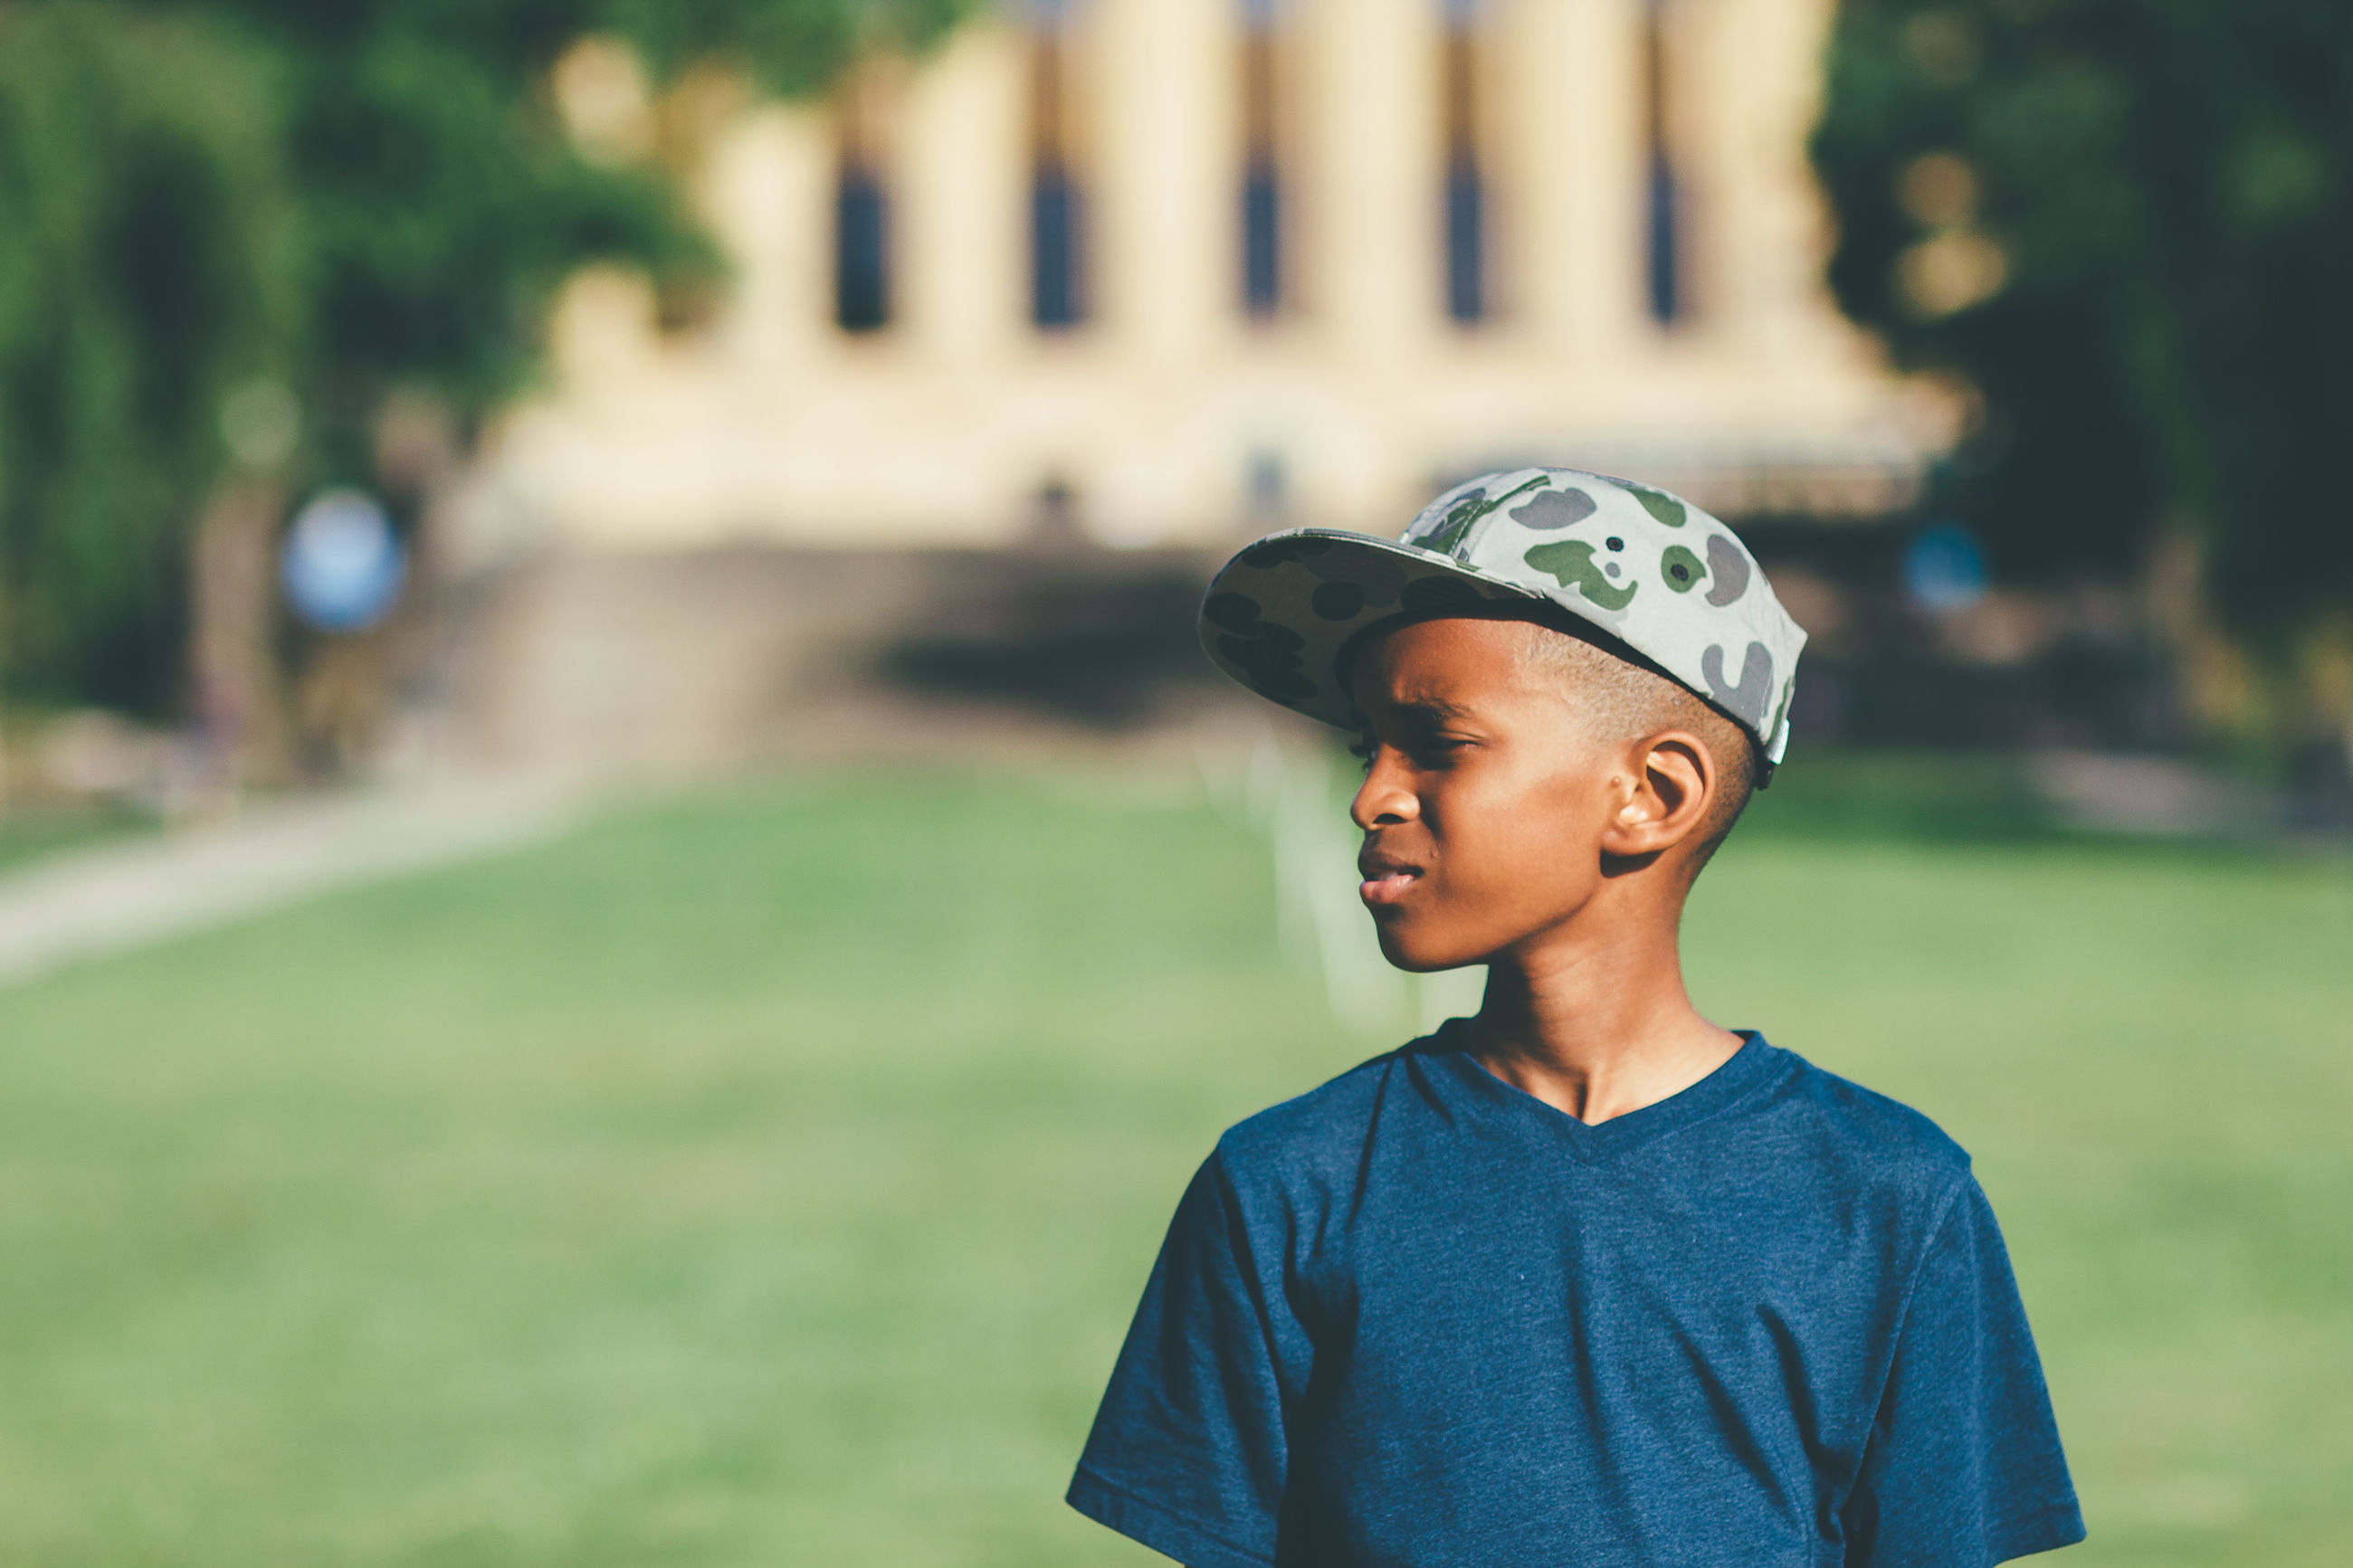 Boy with hat looking away while standing on field